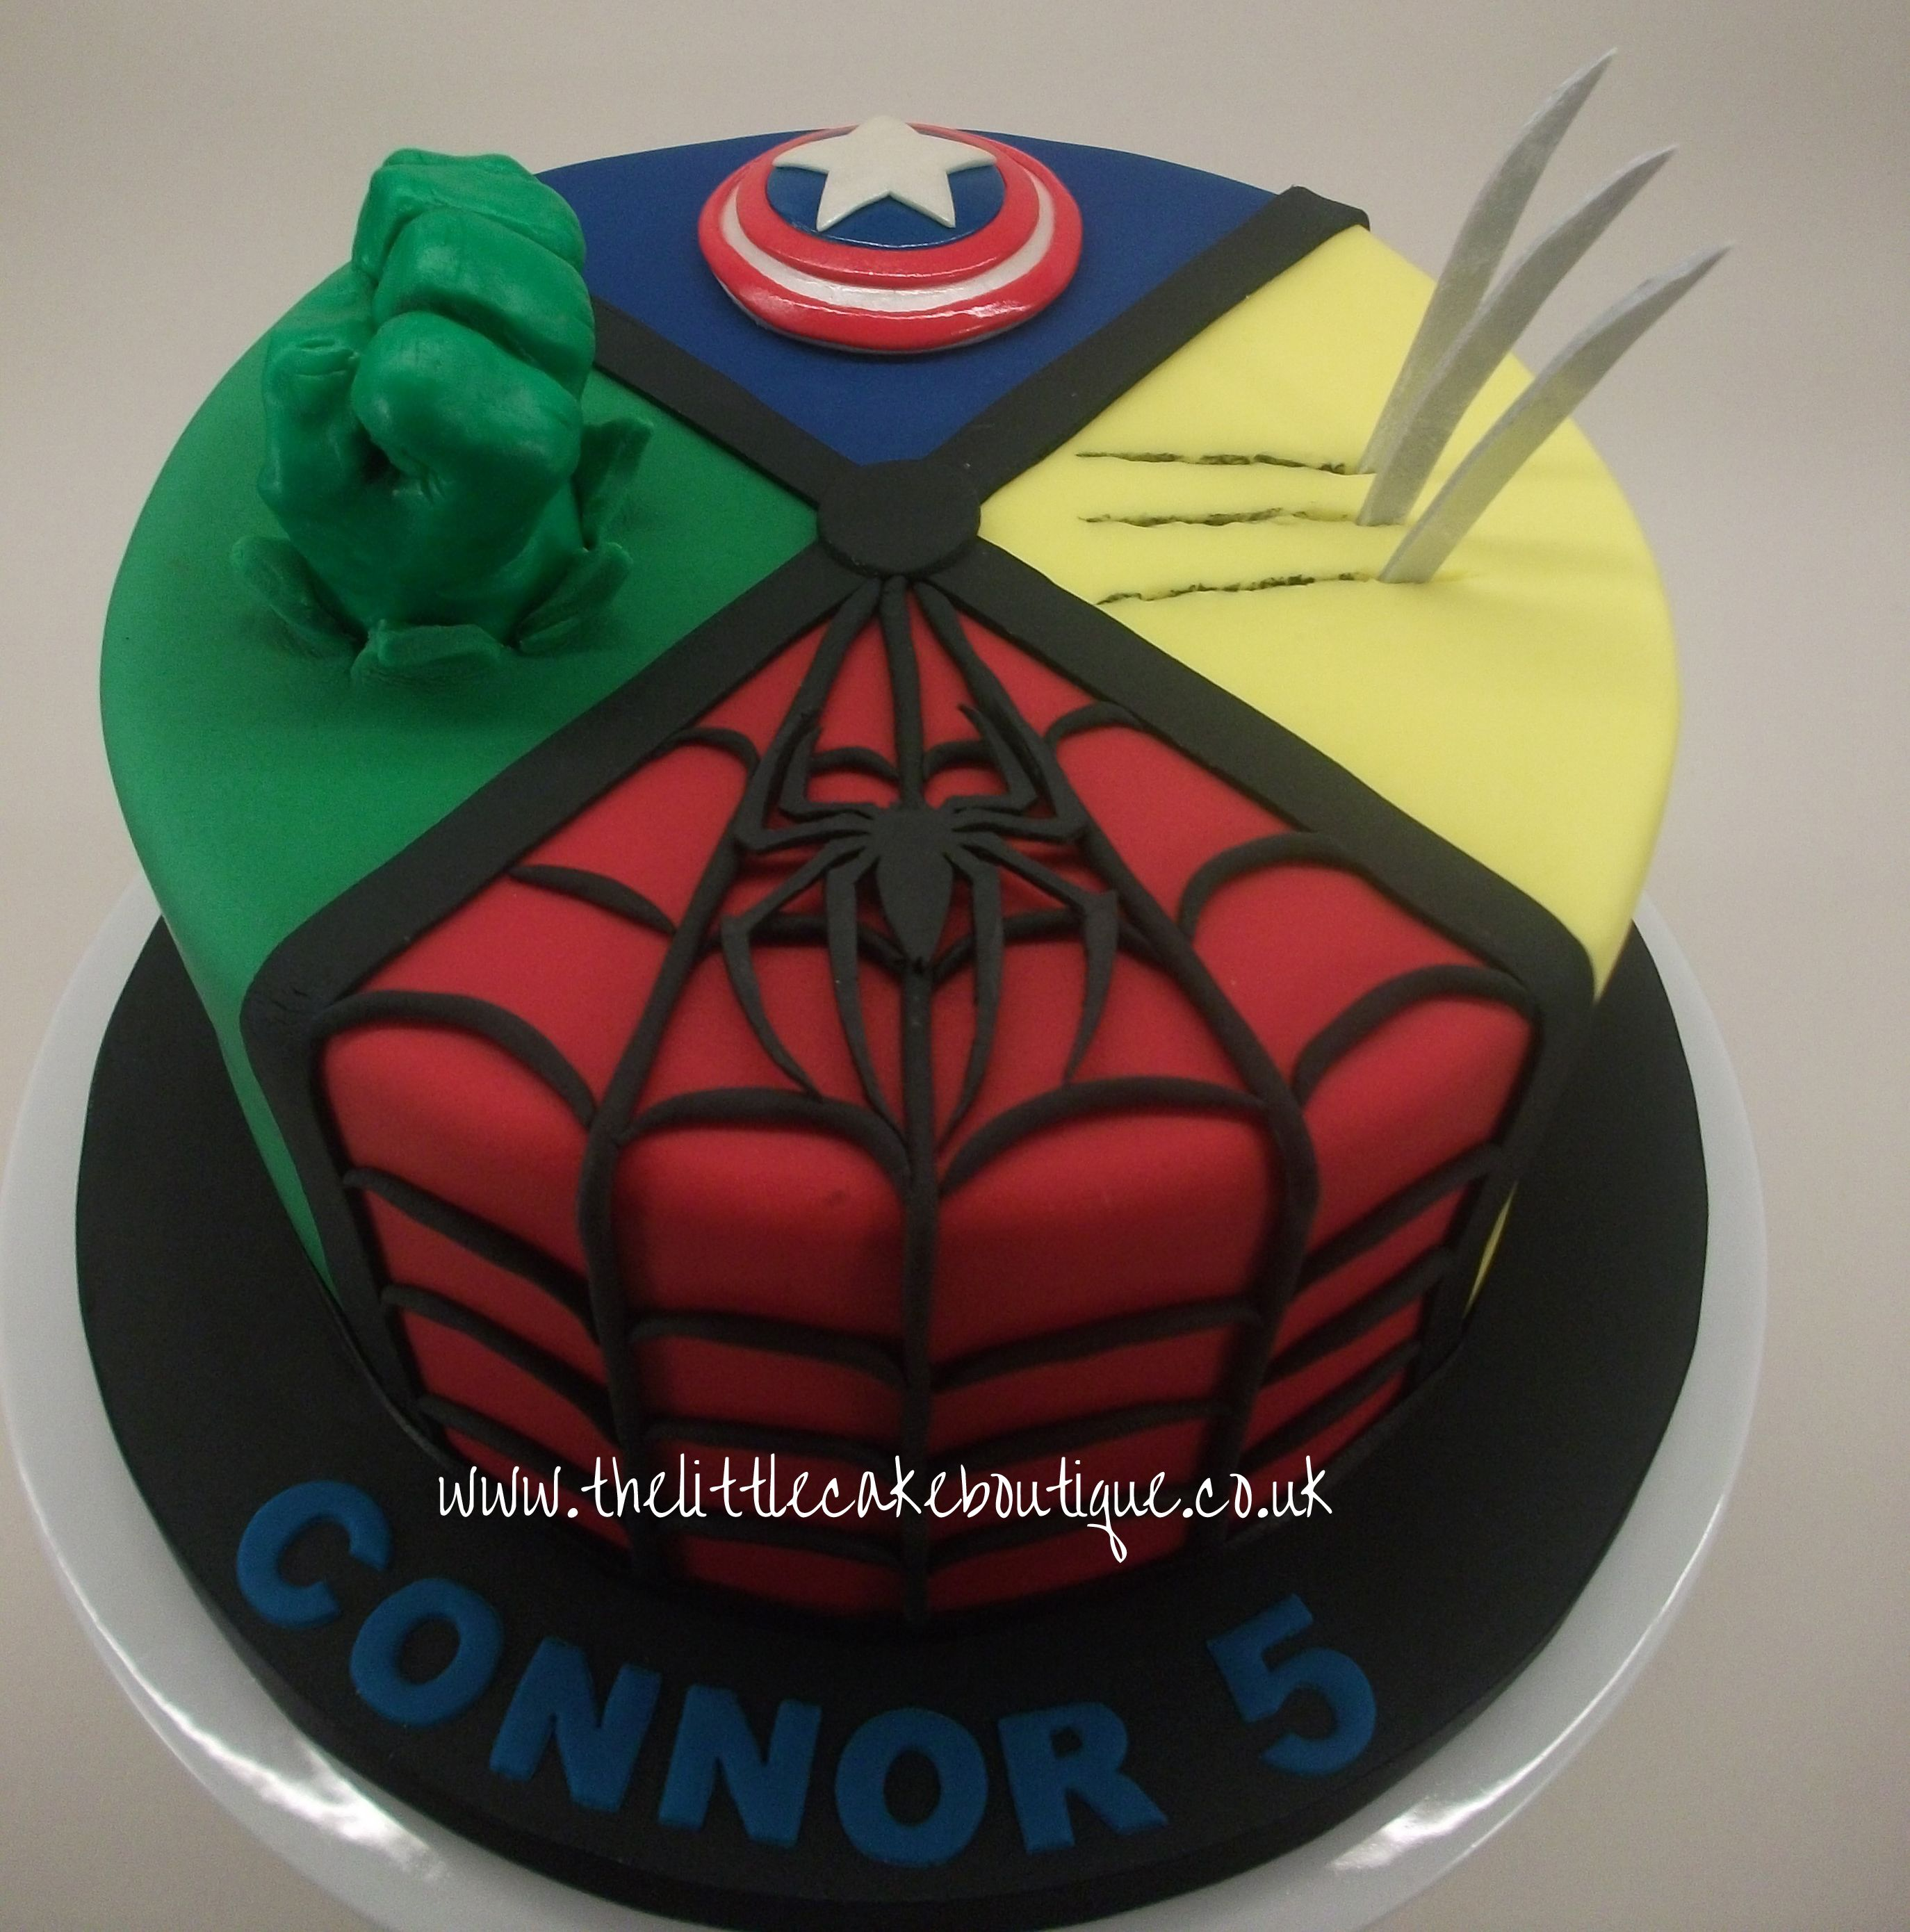 Fabulous Marvel Avengers Birthday Cake With Hulk Fist Wolverine Spiderman Funny Birthday Cards Online Alyptdamsfinfo